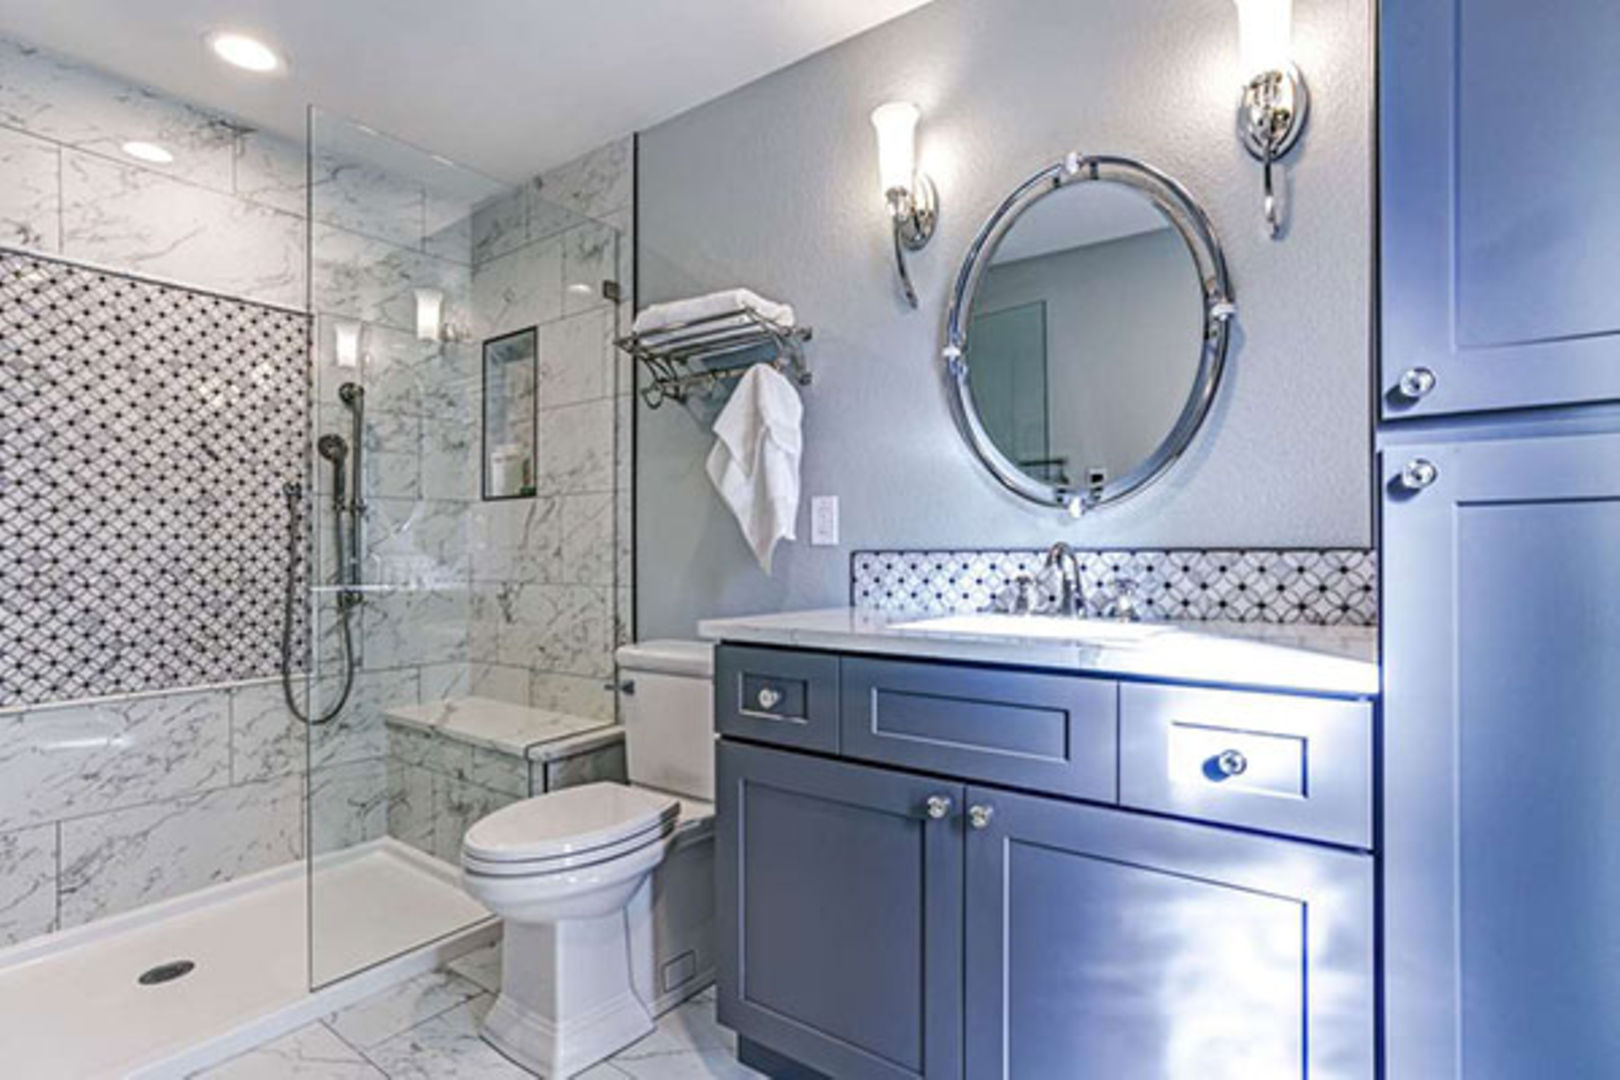 Instal Bathroom Cabinets To Infuse Style Personality Nation